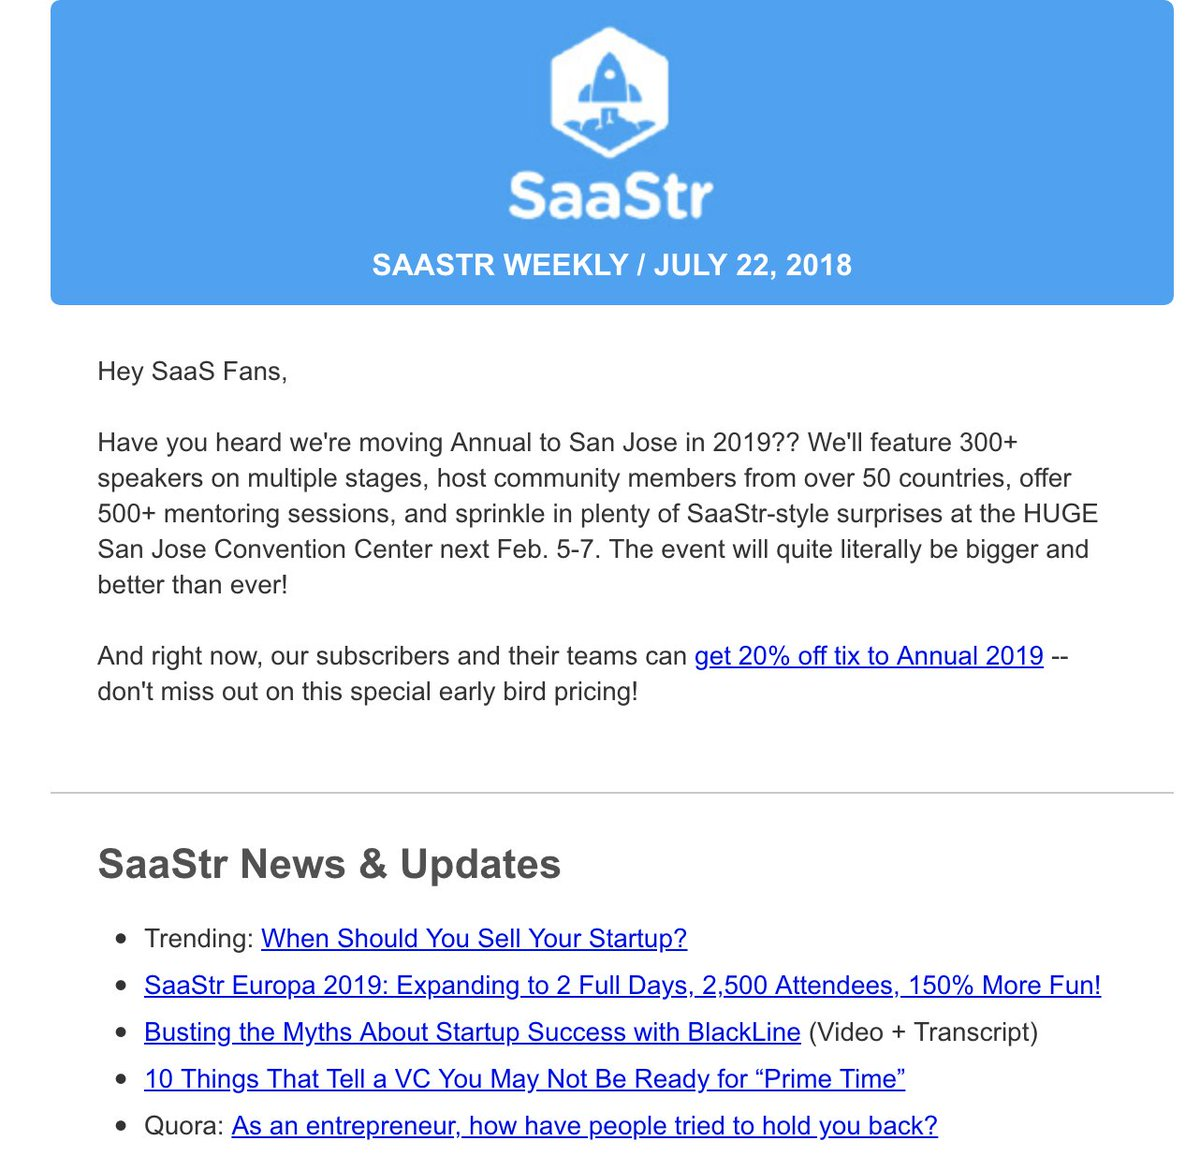 Jason M Lemkin On Twitter Saastr Annual Prices Go Up August 1 Get 20 Off Here Now Before End Of Month Https T Co 2smkpidbpu